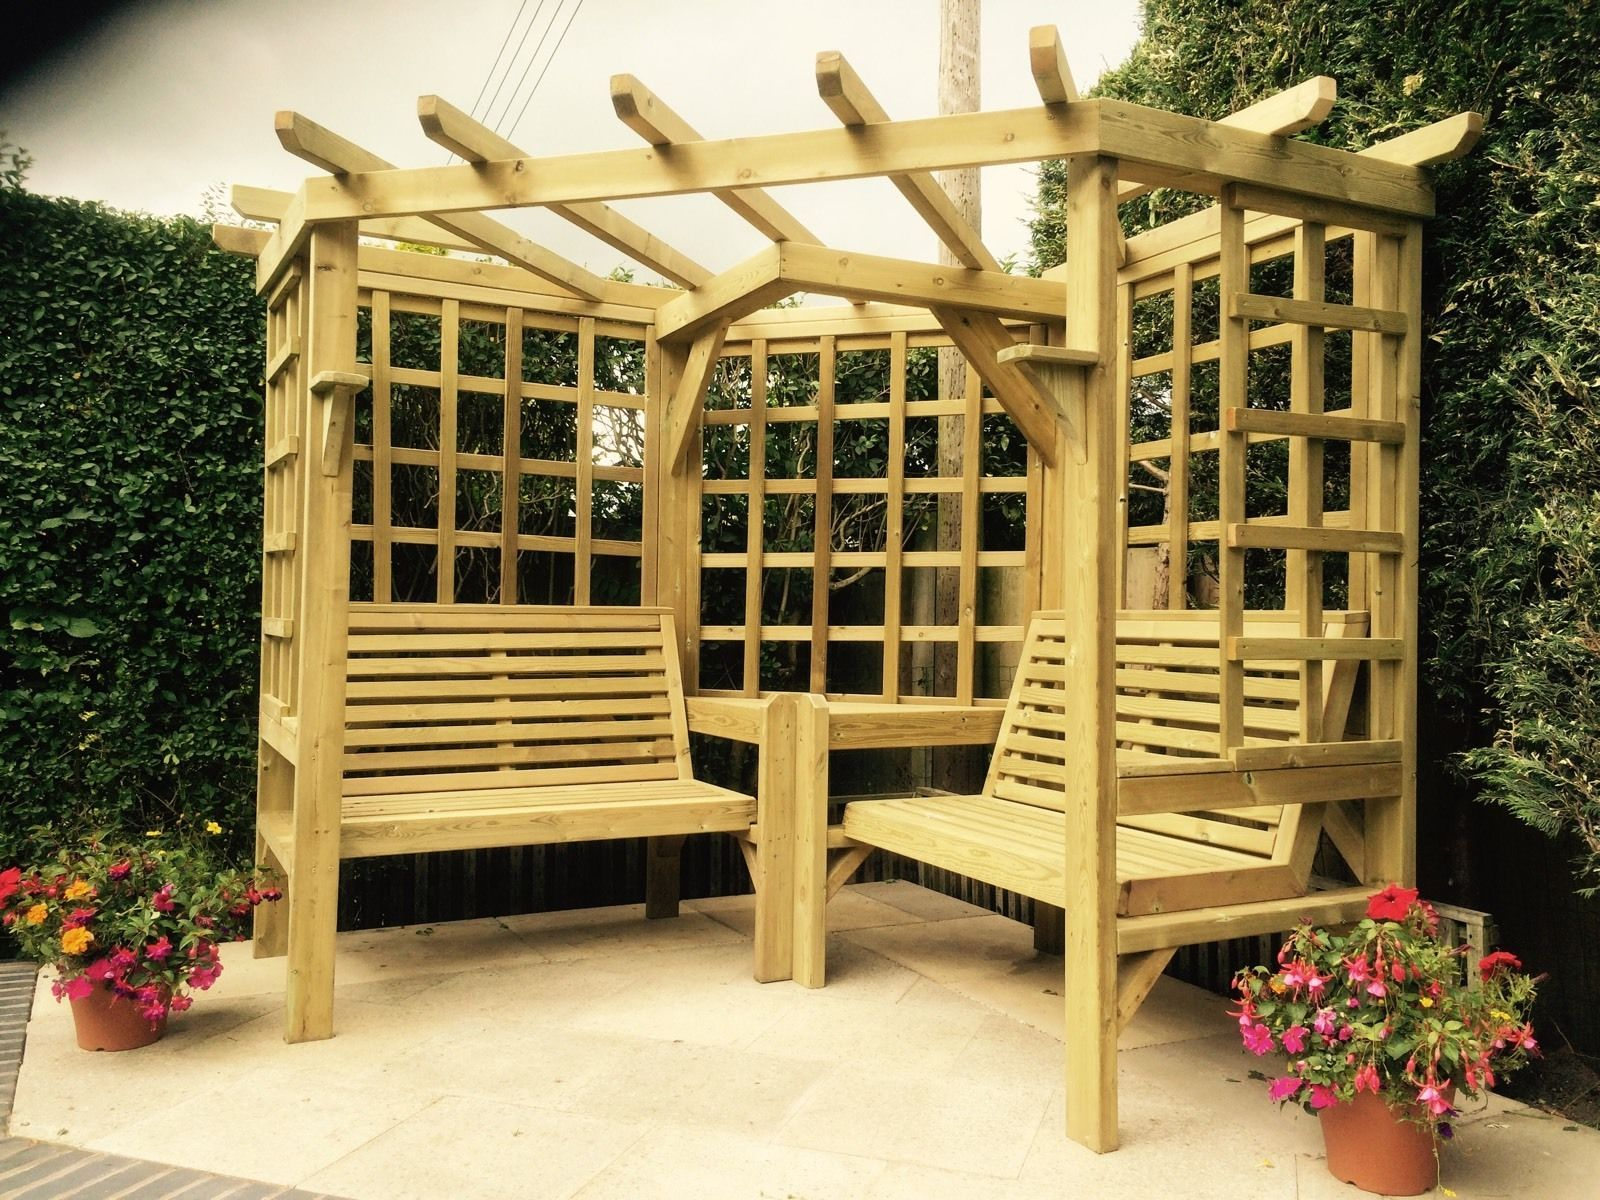 All Of Our Products Are Made From Wood Which Is A Raw Material Therefore There May Be Some Splits And Wooden Garden Furniture Pergola Wooden Garden